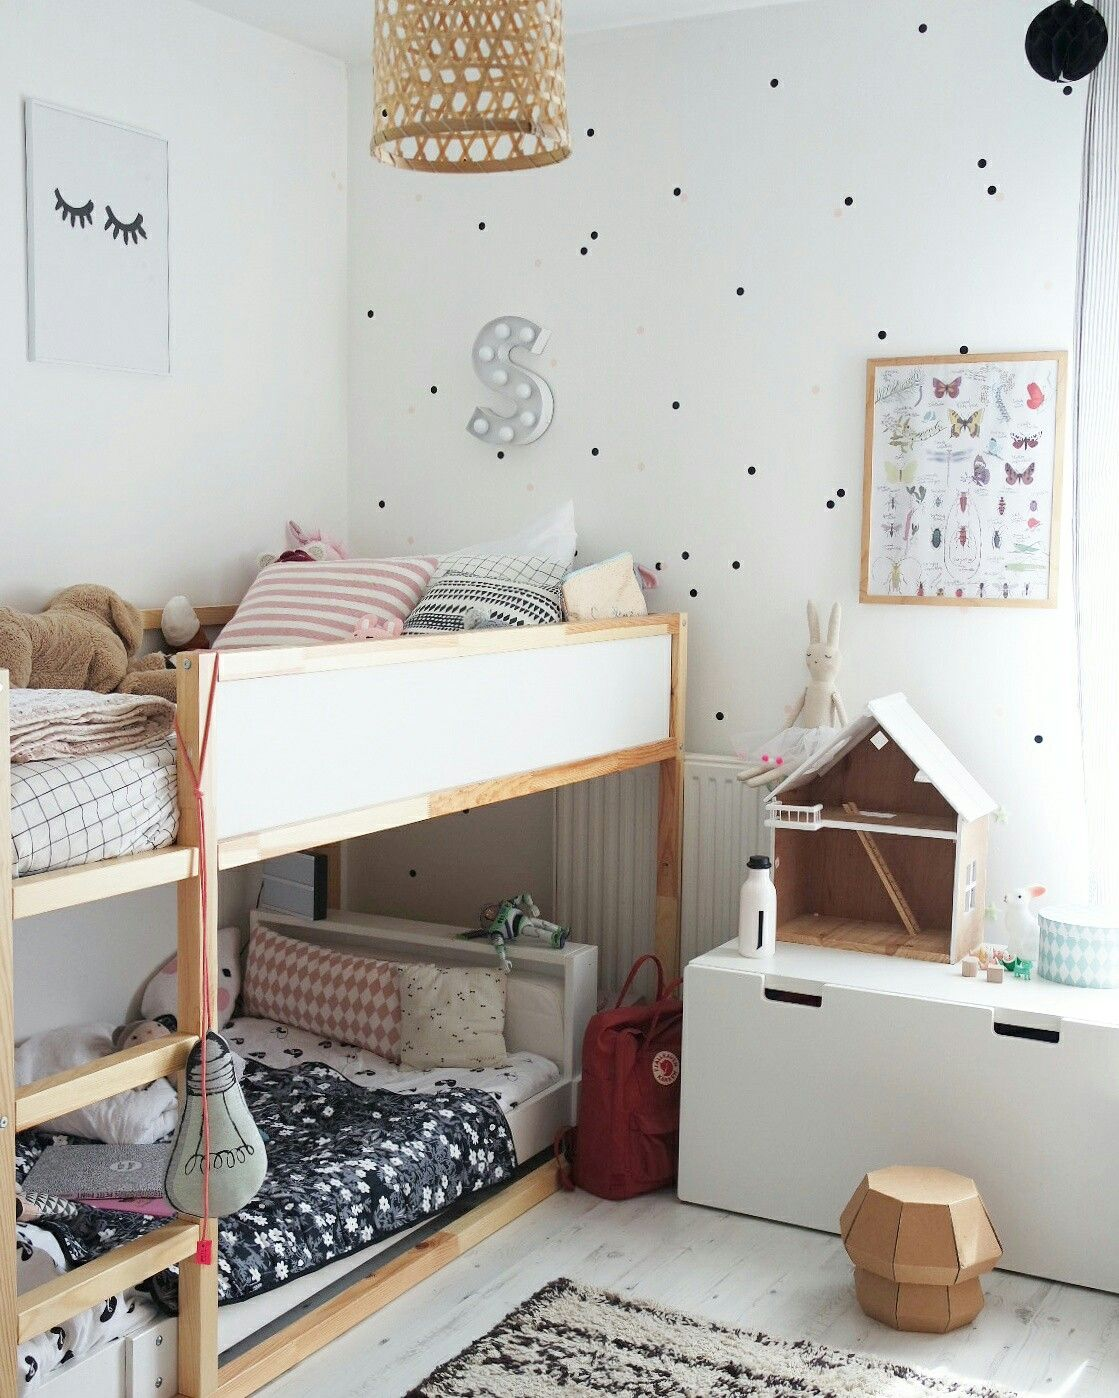 lots of beautiful things to see without being overly designed or super stylish shared bedroom for kids